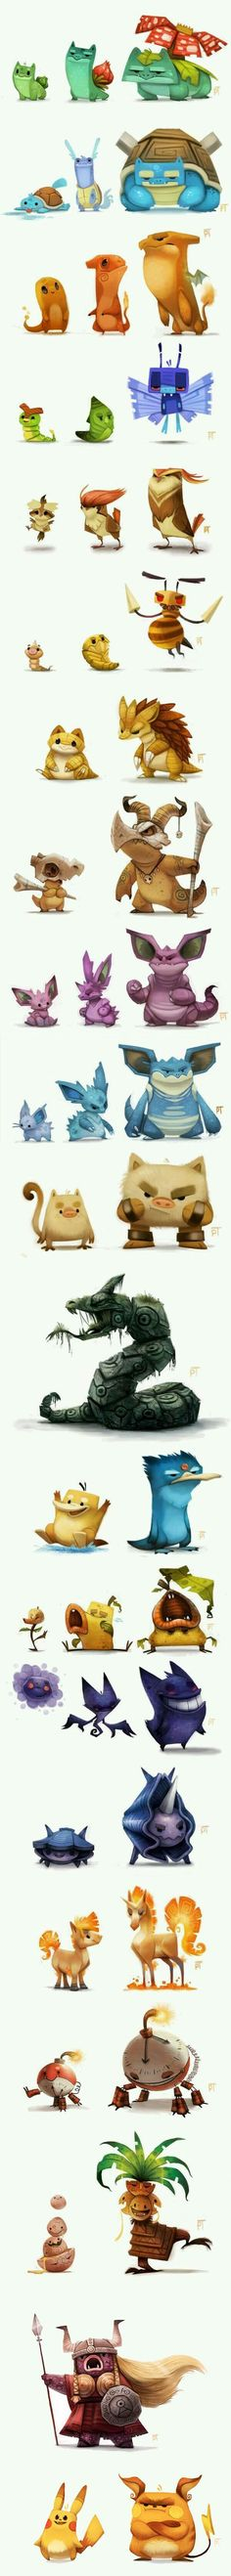 Insane Pokemon art (By Piper Thibodeau)